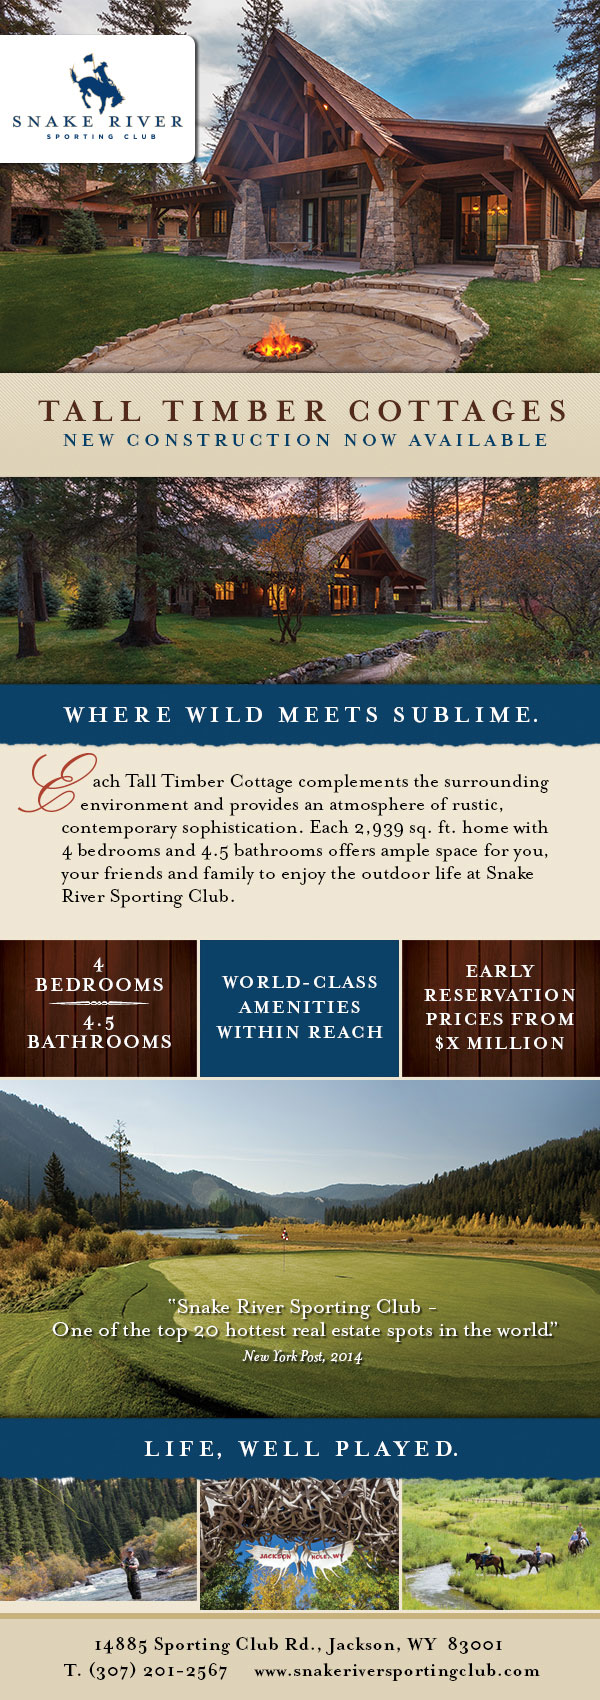 Snake River Sporting Club Tall Timber Cottages Eblast